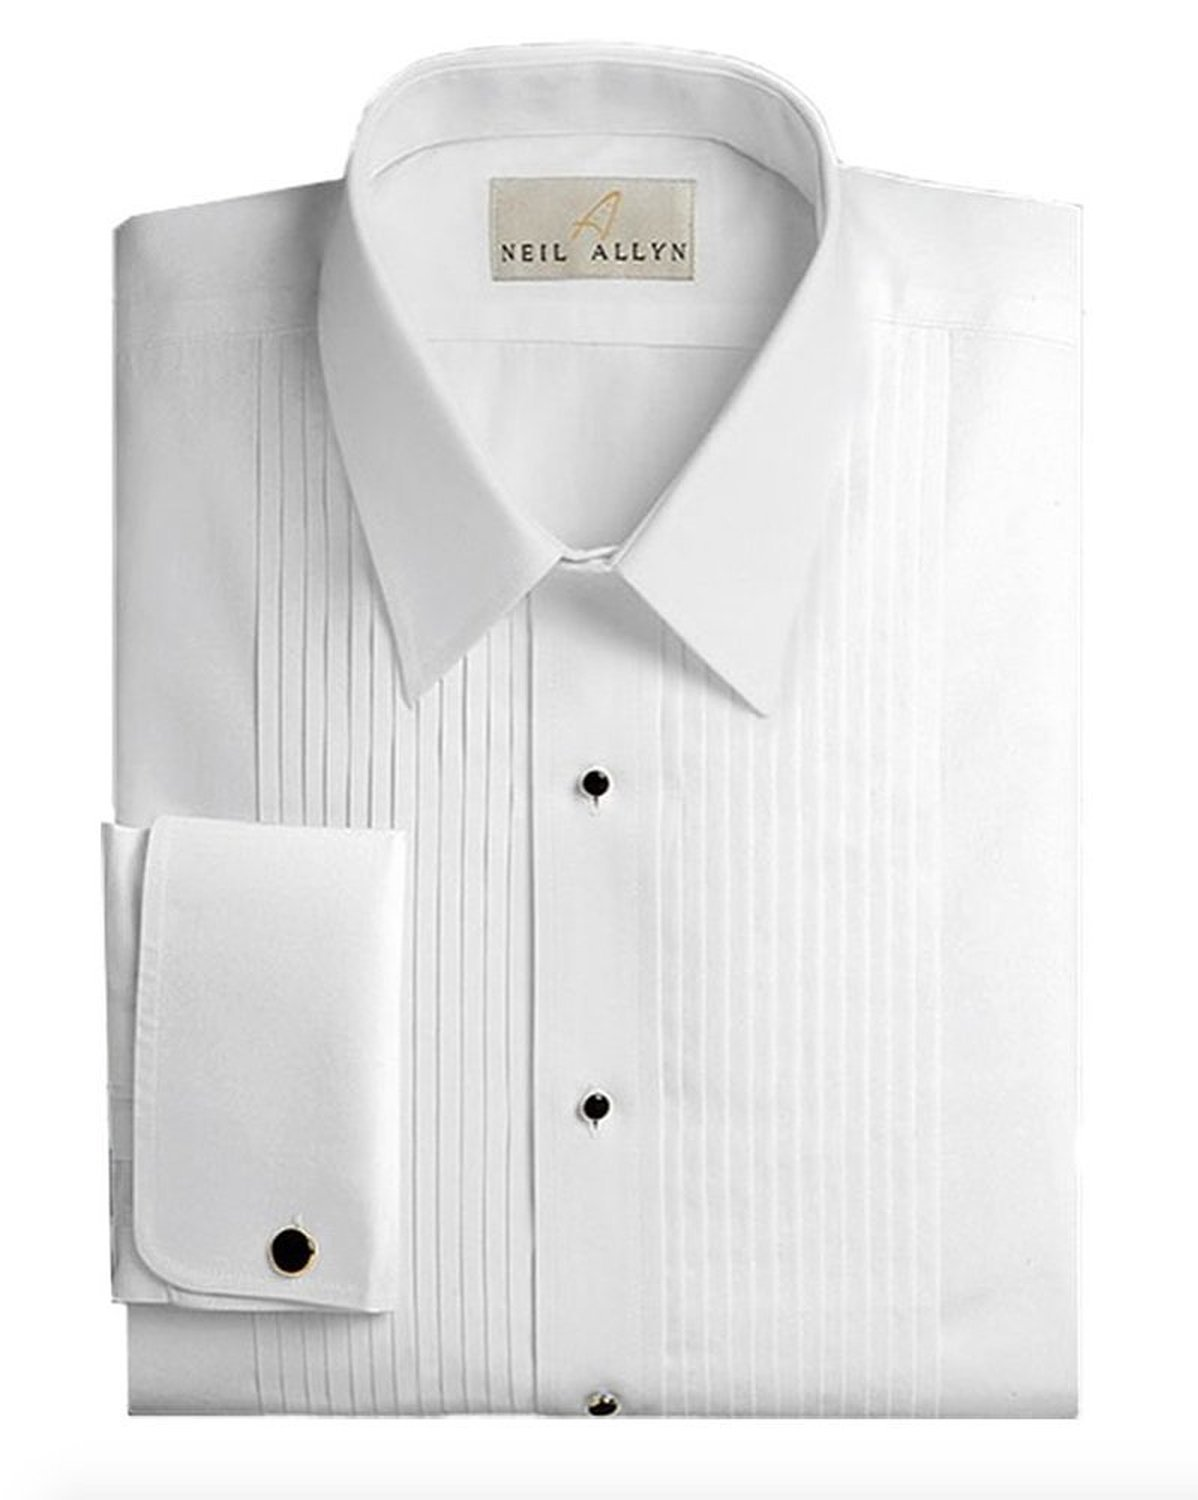 Slim Fit Tuxedo Shirt By Neil Allyn - 100% Cotton Laydown Collar with French Cuffs (17 - 34/35)